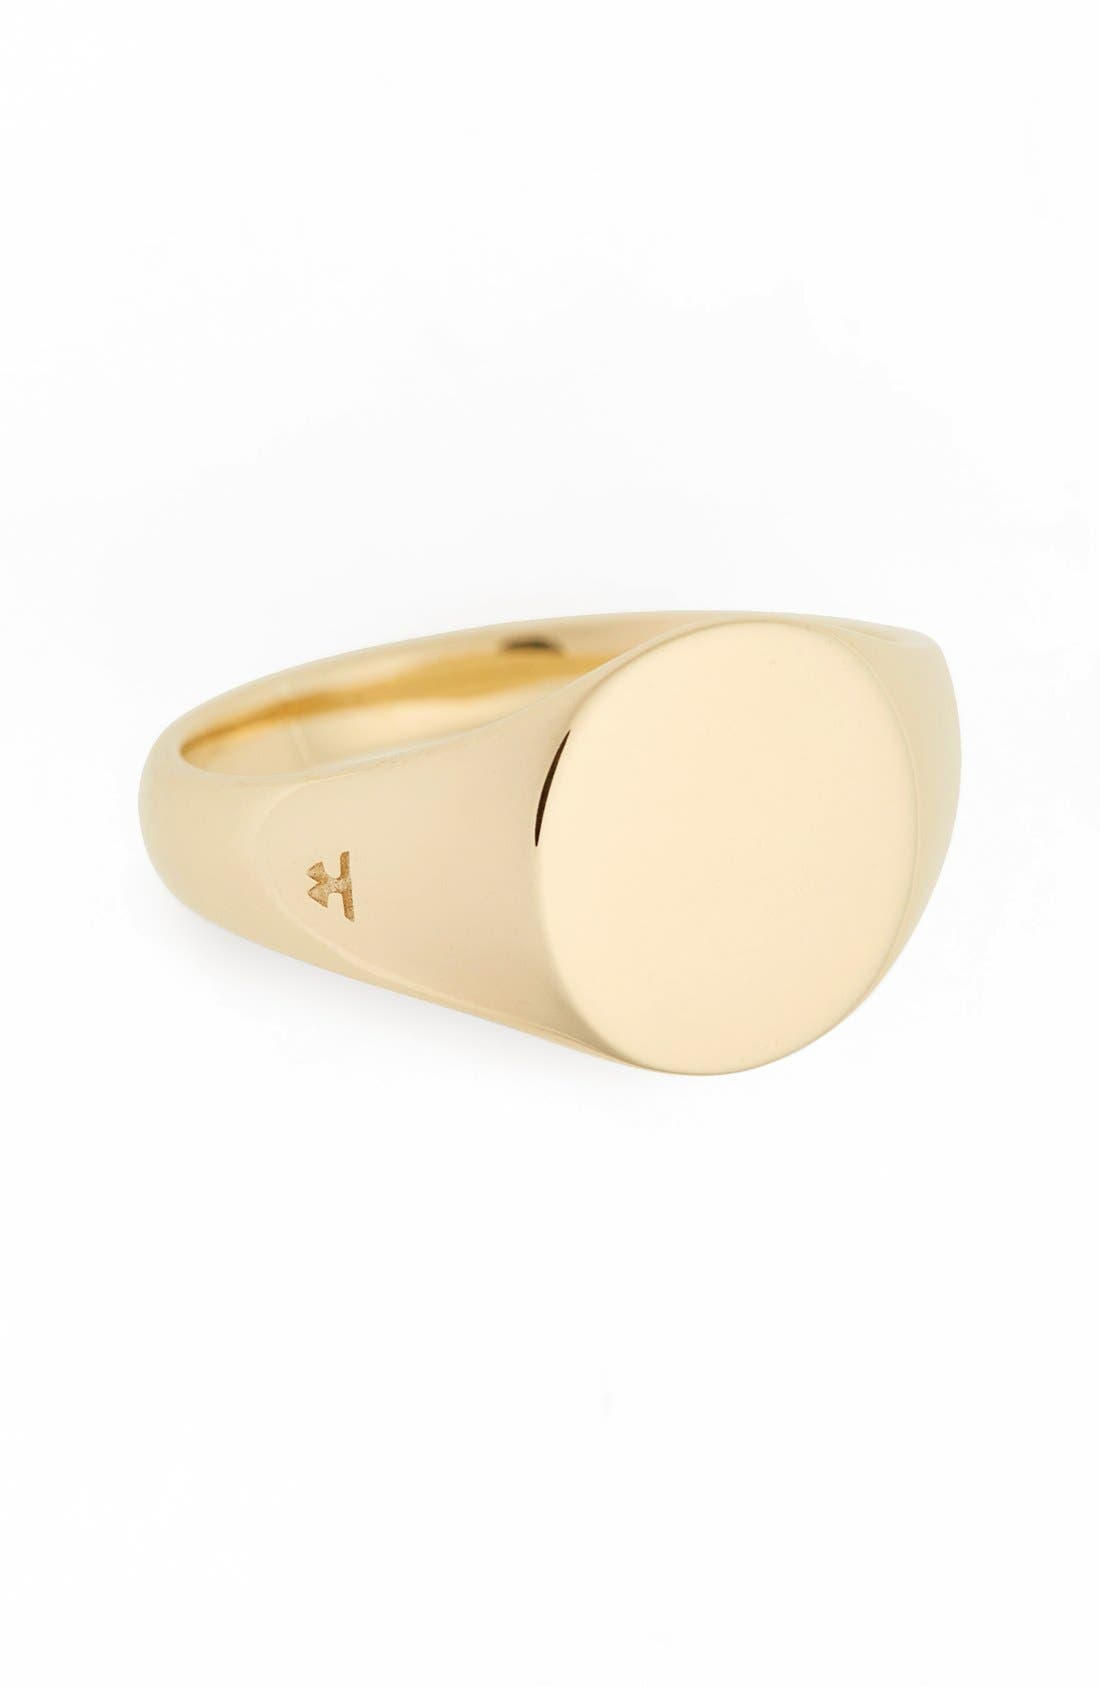 Alternate Image 1 Selected - Tom Wood Mini Oval Signet Ring